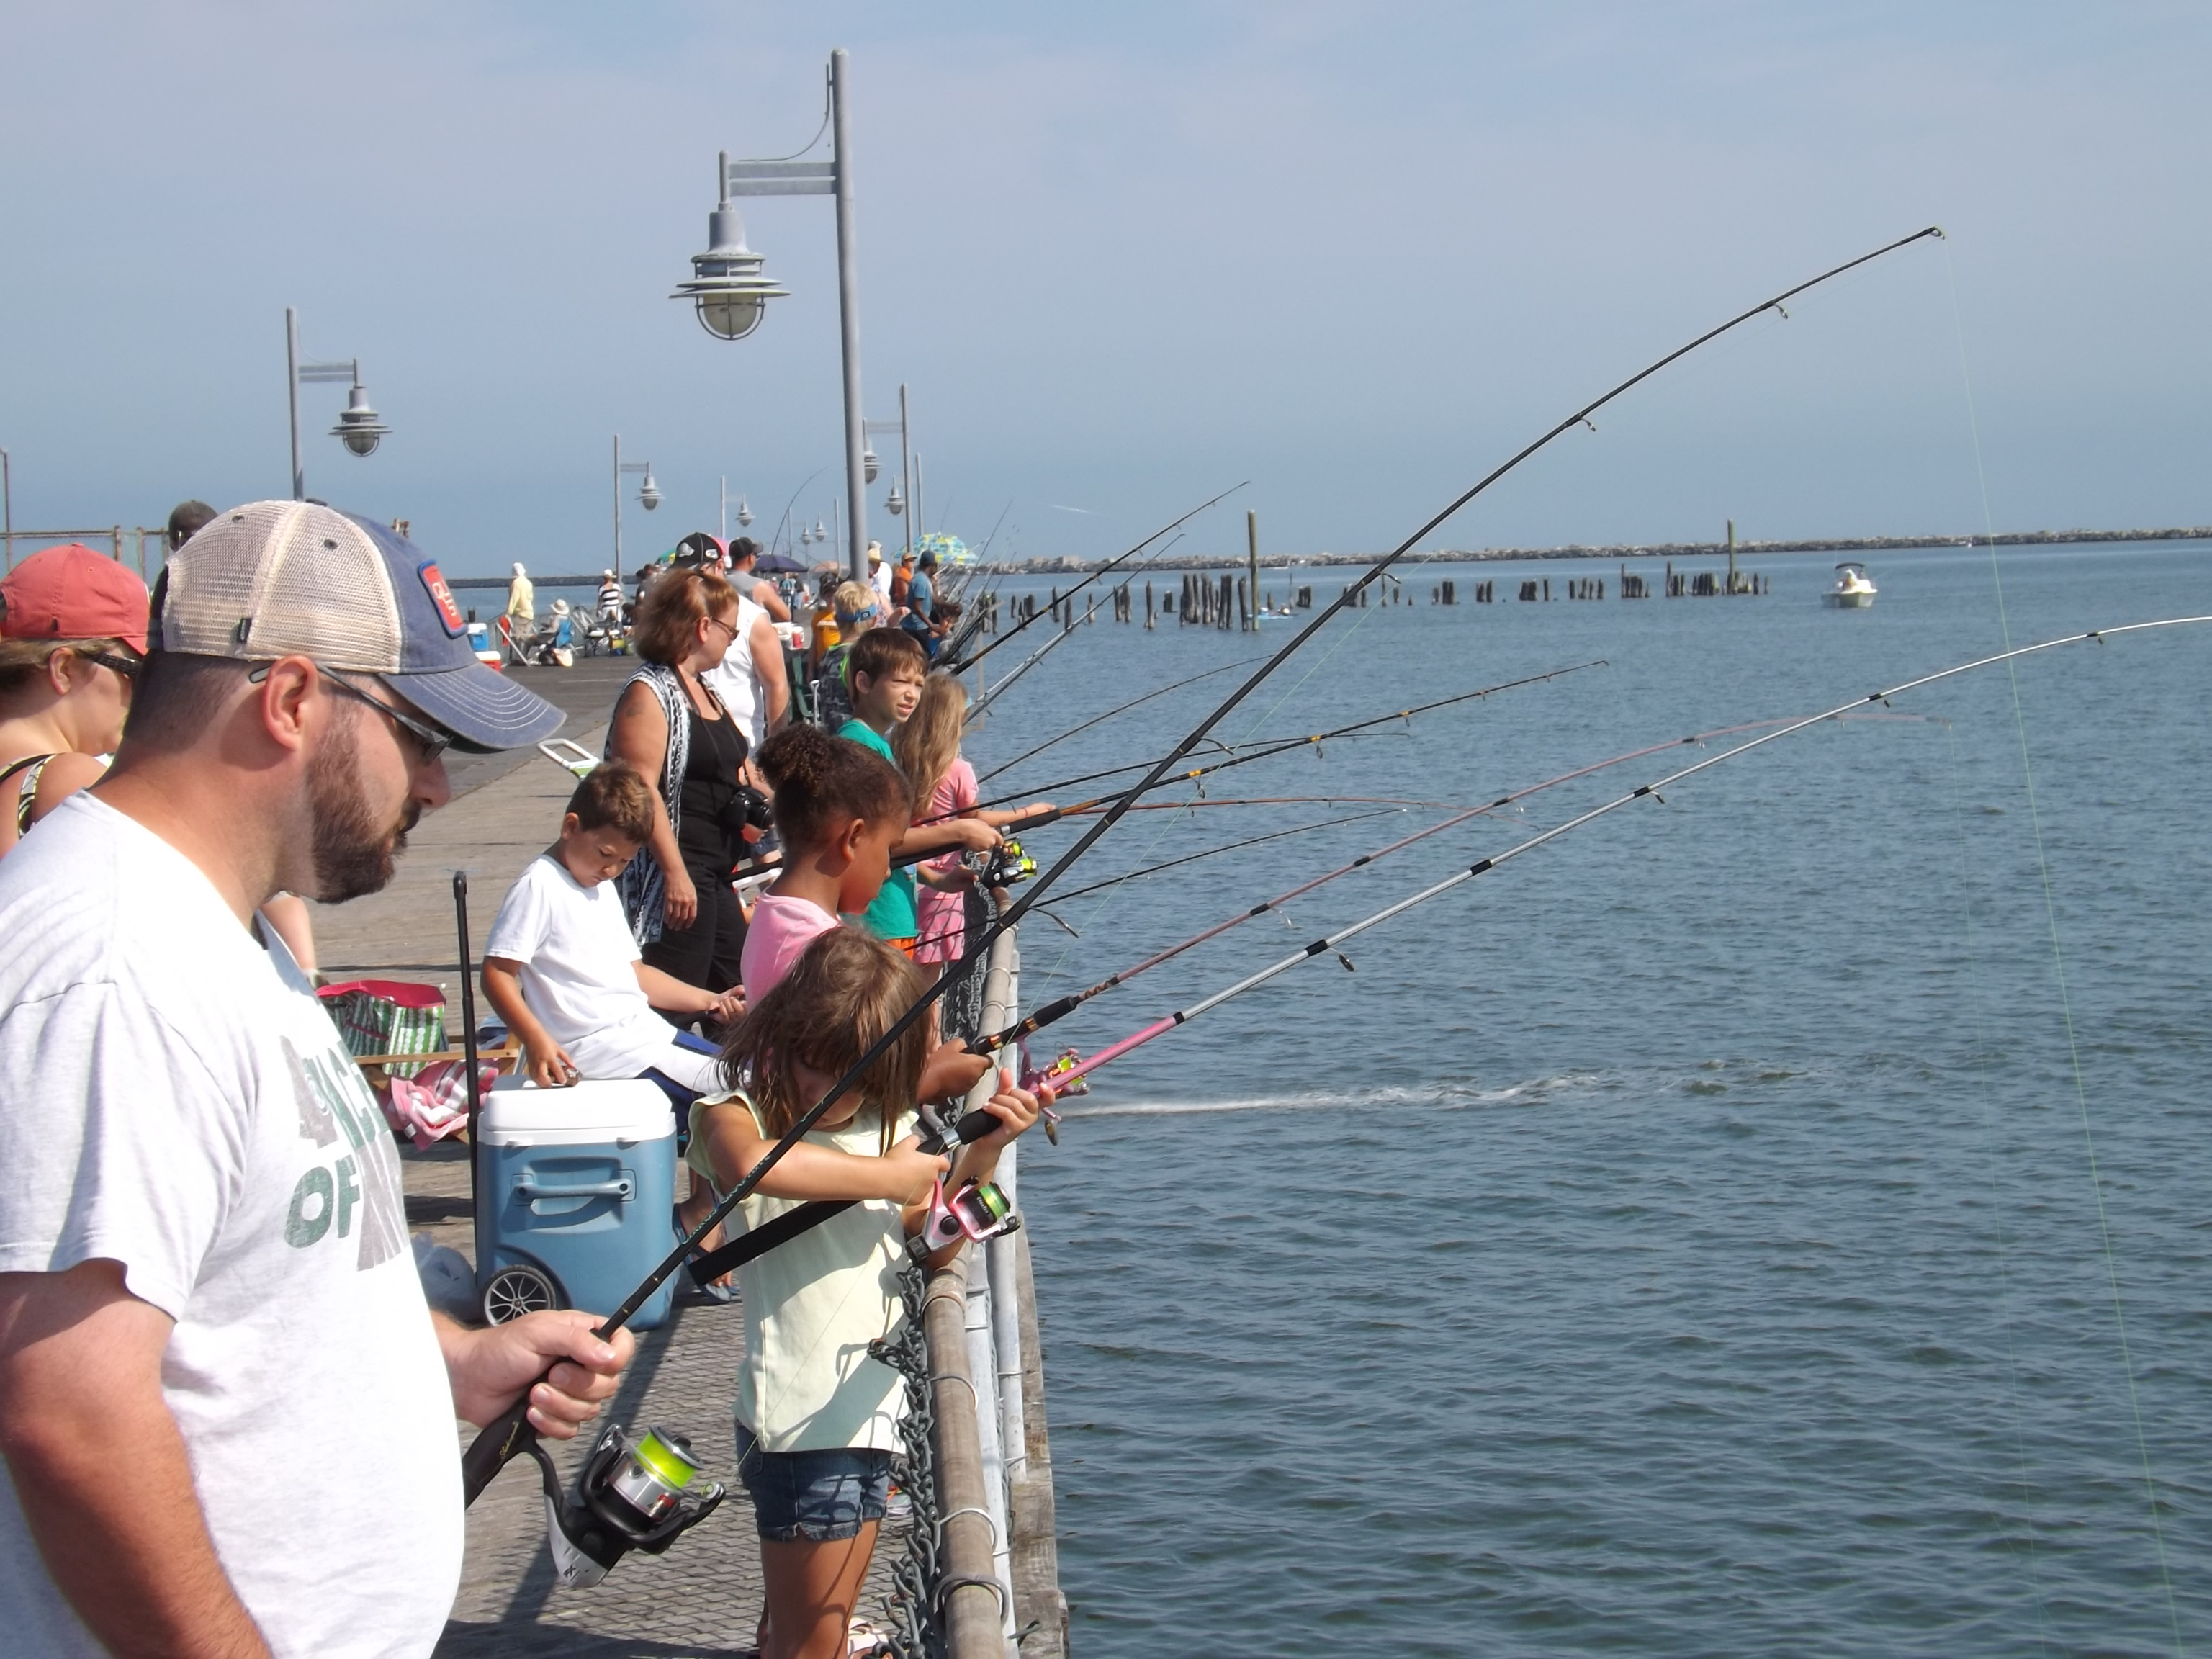 Third annual kids catch all fishing tournament at the indian river kids fishing cape henlopen state park fishing pier delaware sussex county lewes nvjuhfo Choice Image